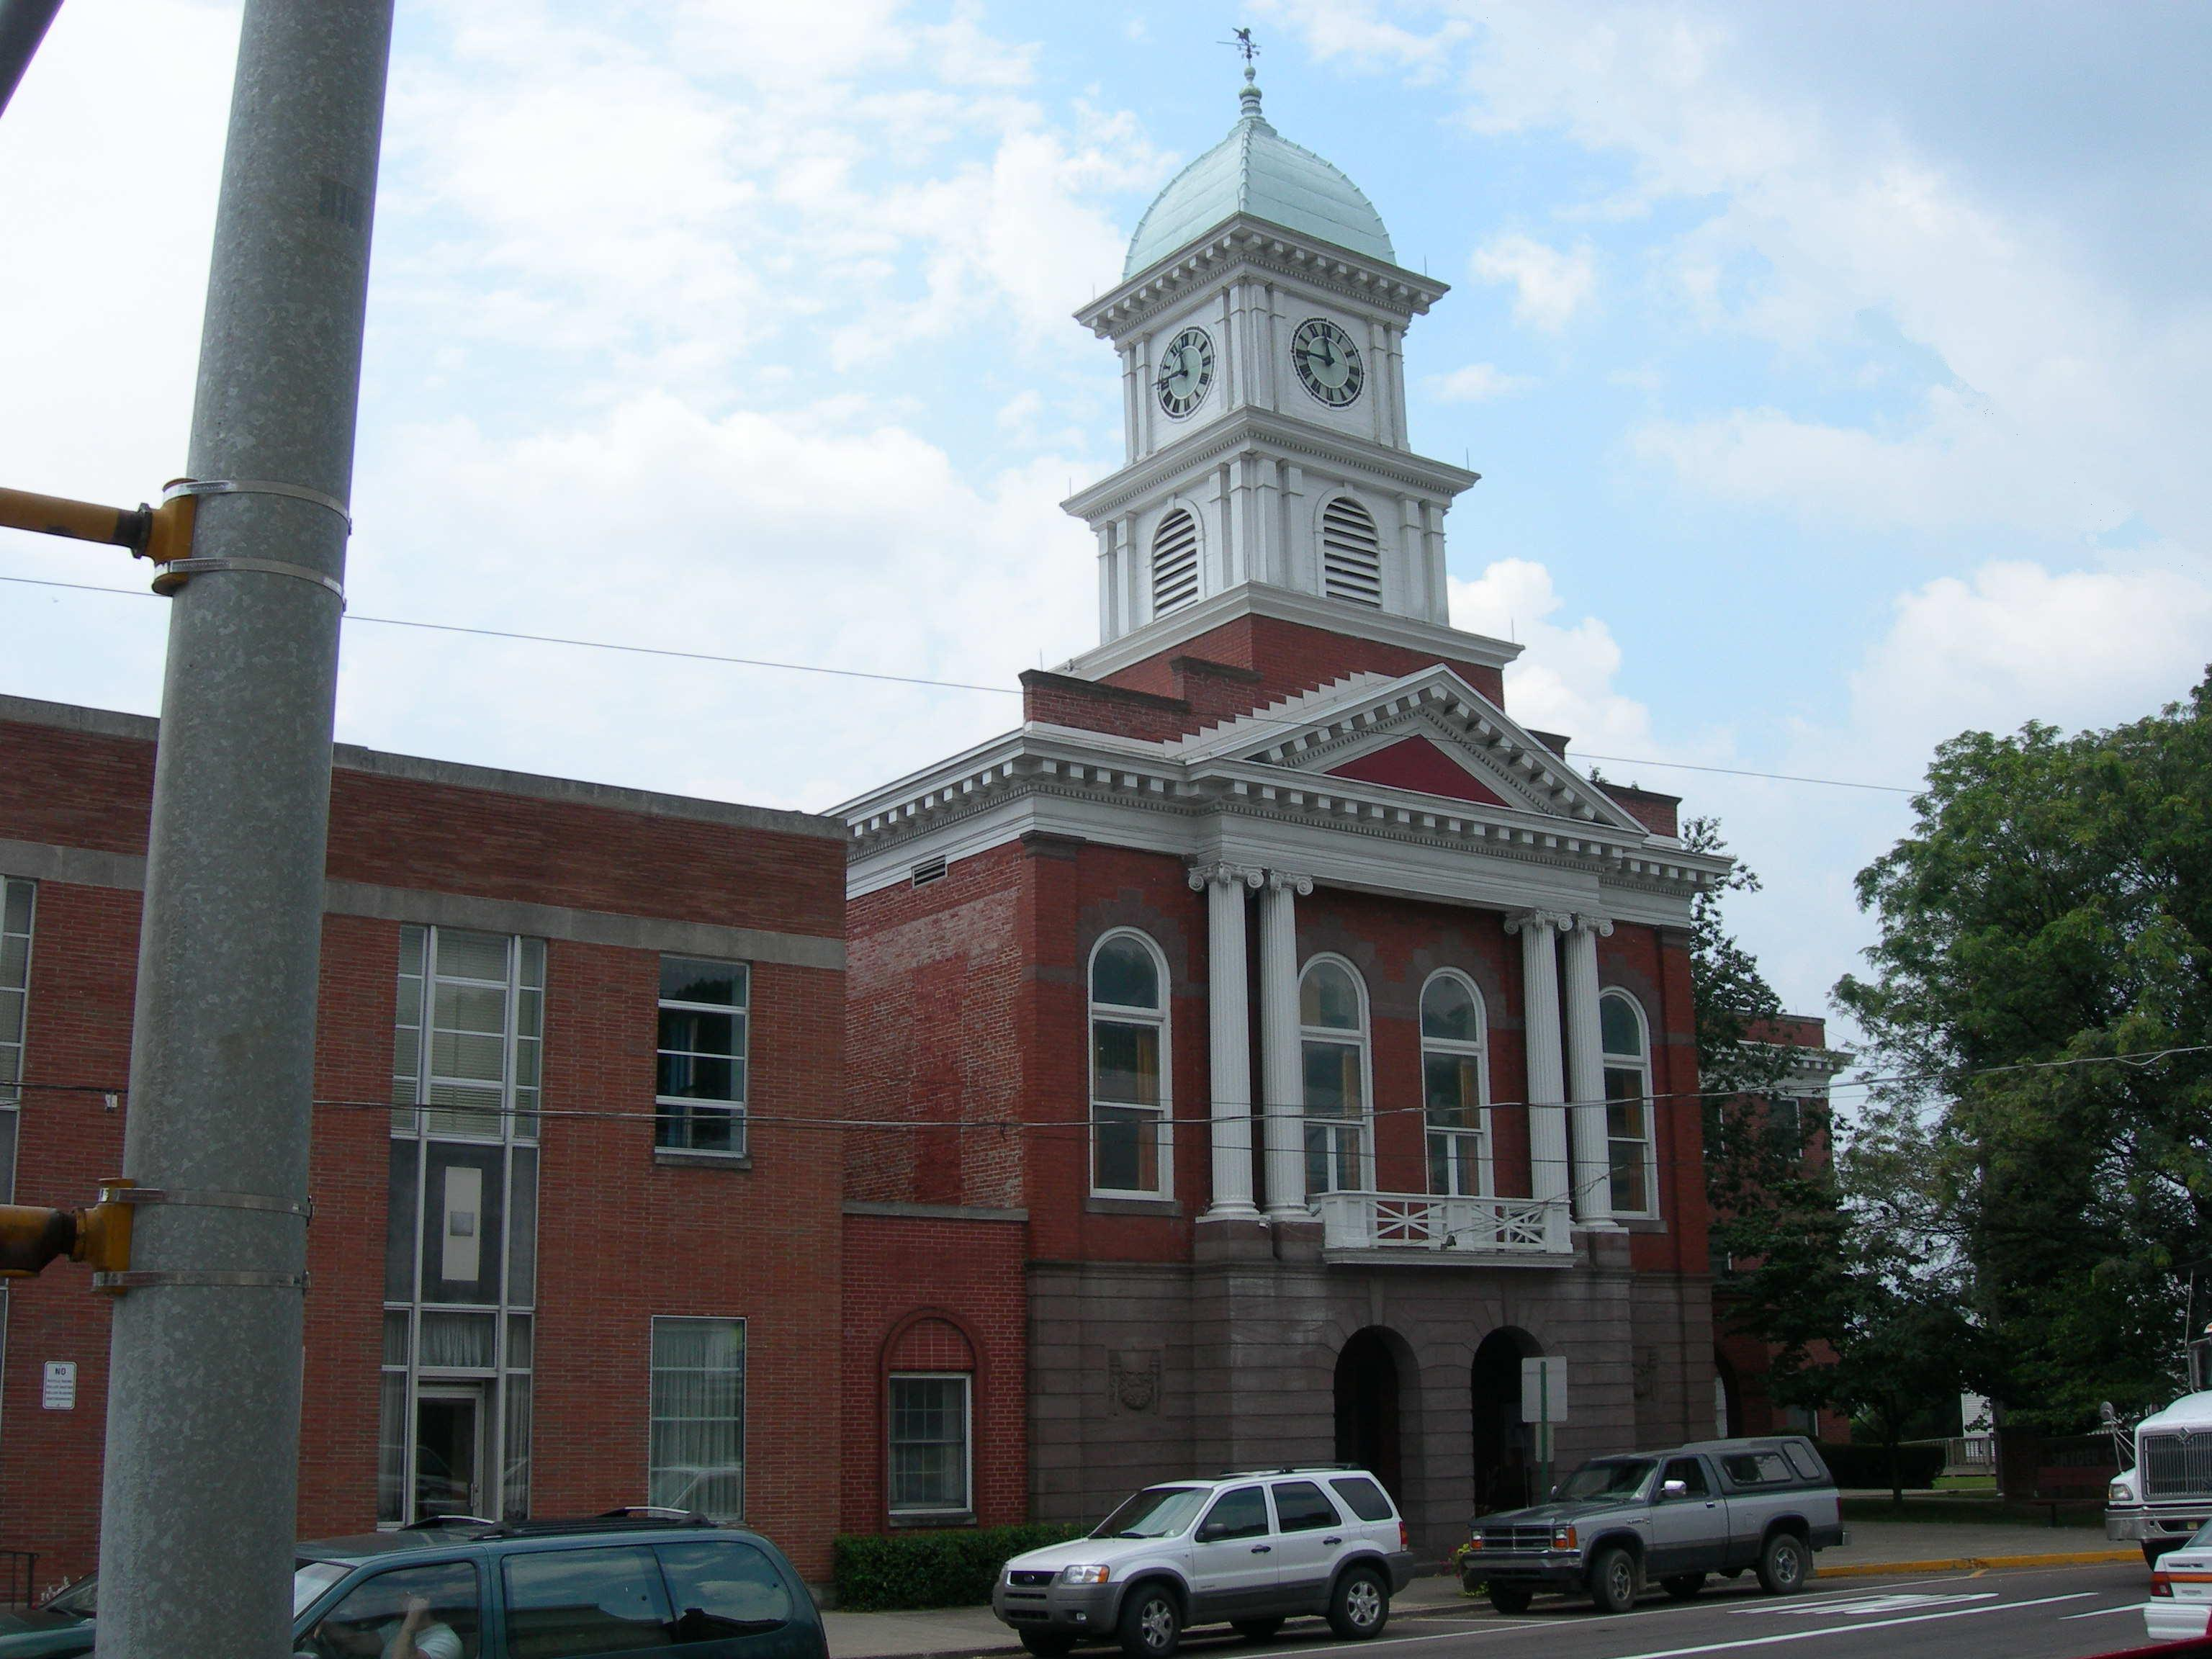 County Seats & Courthouses Schuykill - York on old maps of columbia county, old schools in st. croix county wi, old texas state map,